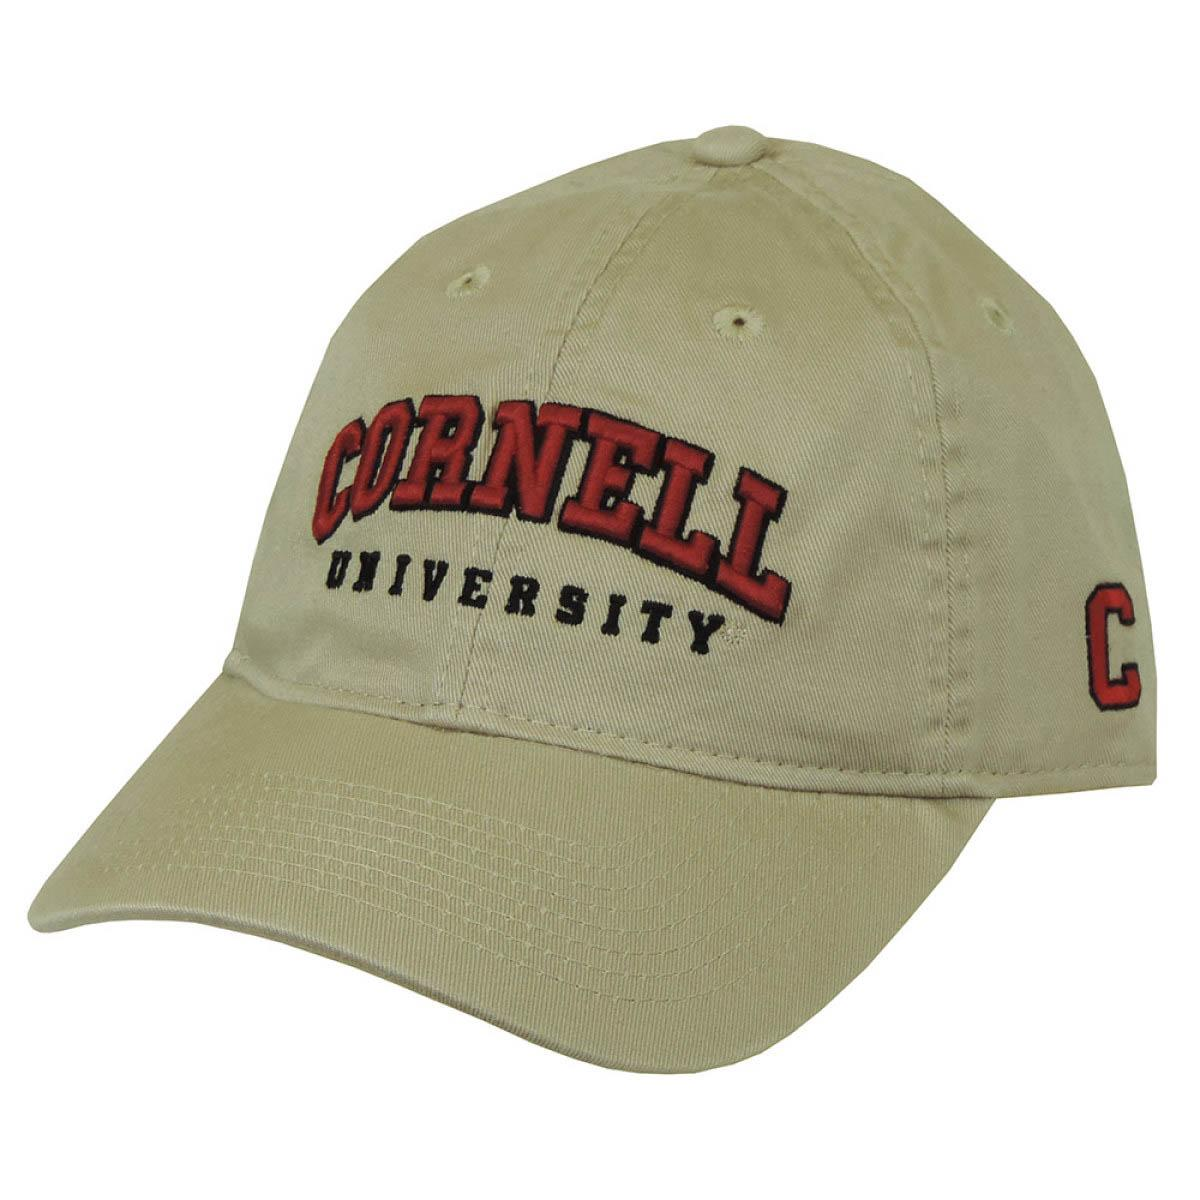 5e6bcd1214d7bd Cornell Over University Vintage Cap. (0) No Reviews yet. Pinit